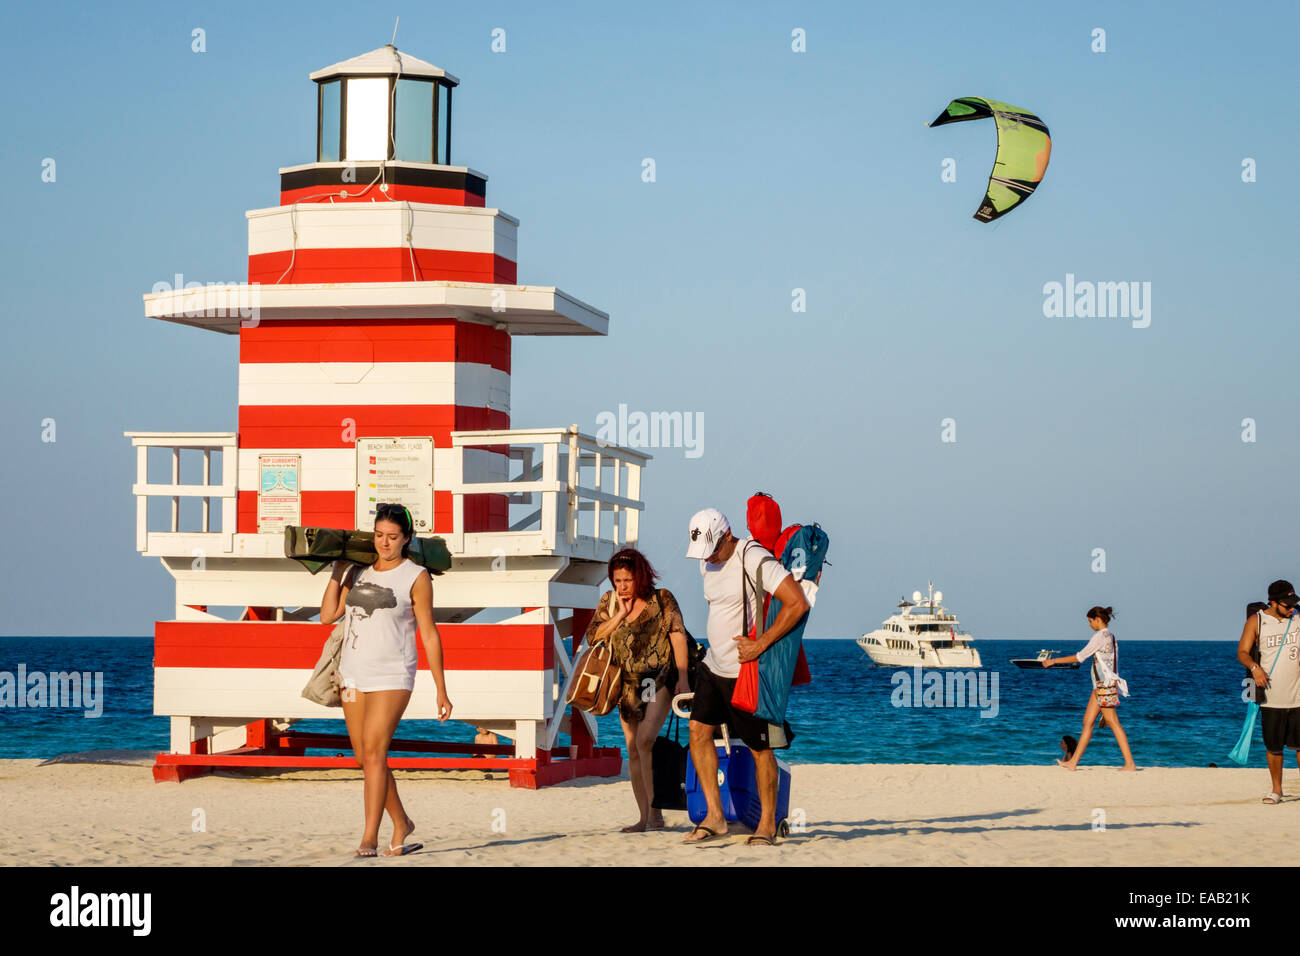 Miami Beach Florida sand lighthouse shaped lifeguard station Atlantic Ocean water sand woman man sunbathers boat Stock Photo